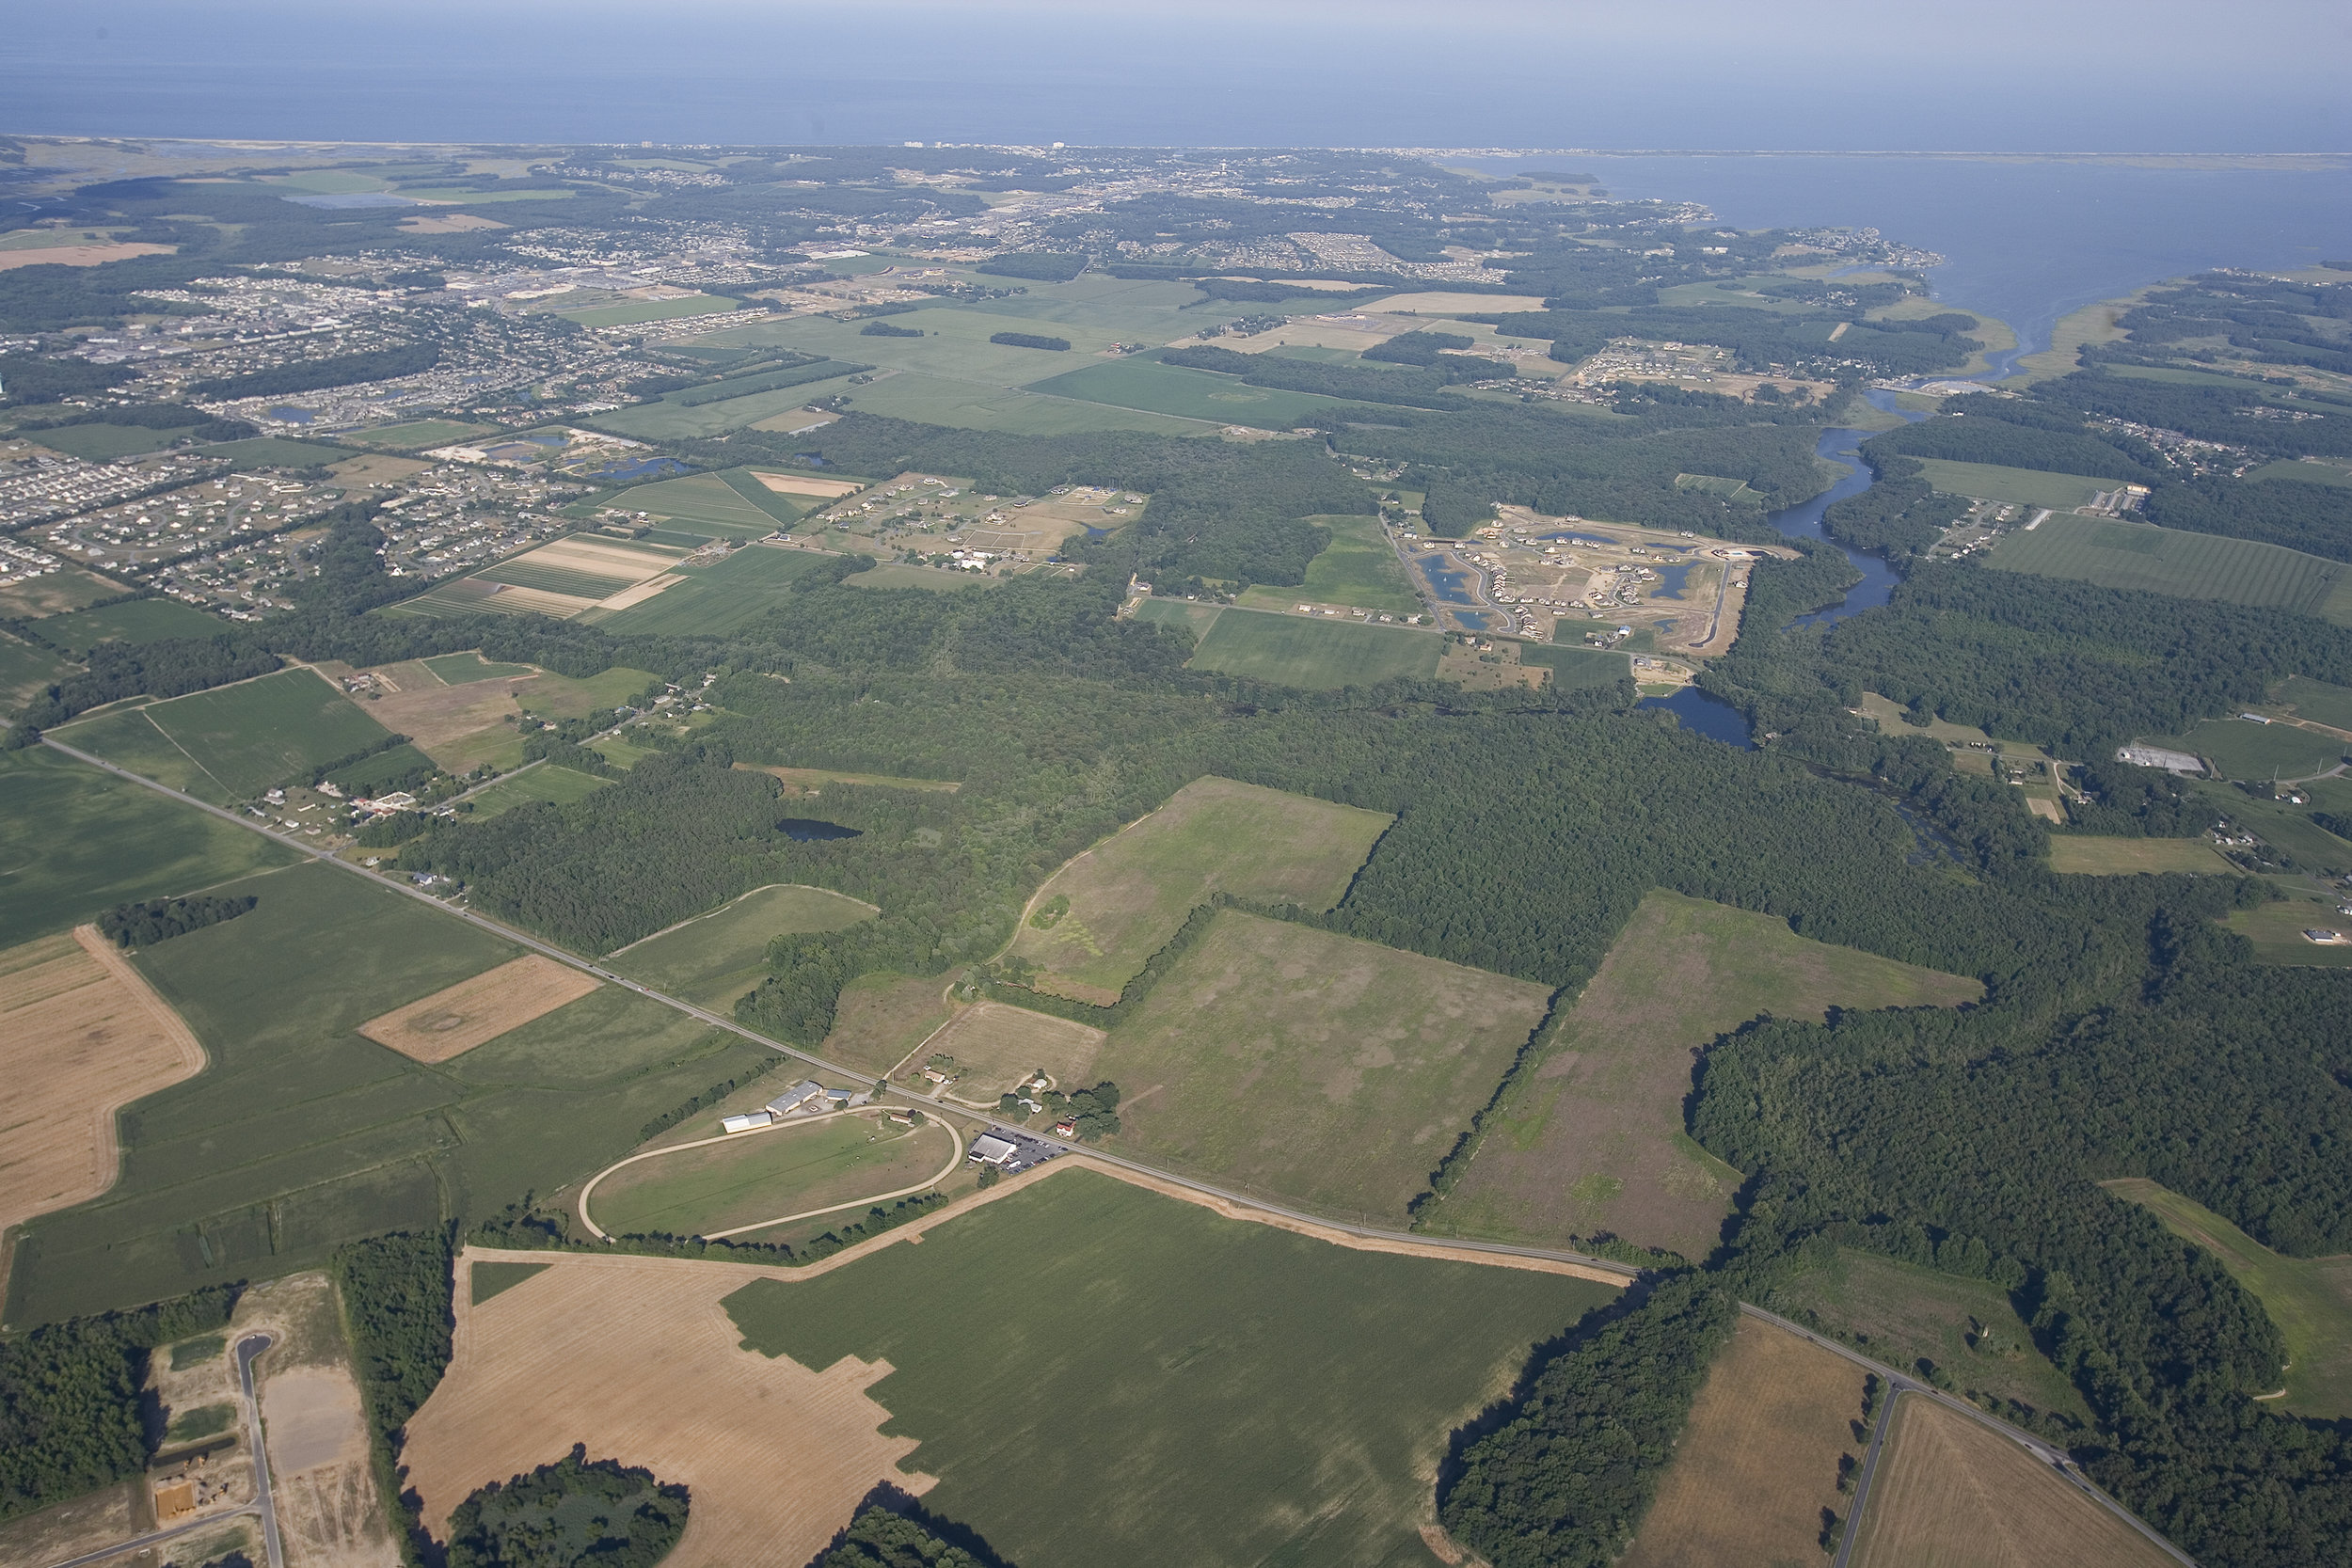 Dorman - The D2 Organization completed the sale of 269 approved single-family home lots to K.Hovnanian Homes. K.Hovnanian Homes will develop the lots, located in Lewes, DE, into a community to be named the Four Seasons at Belle Terre Farms.